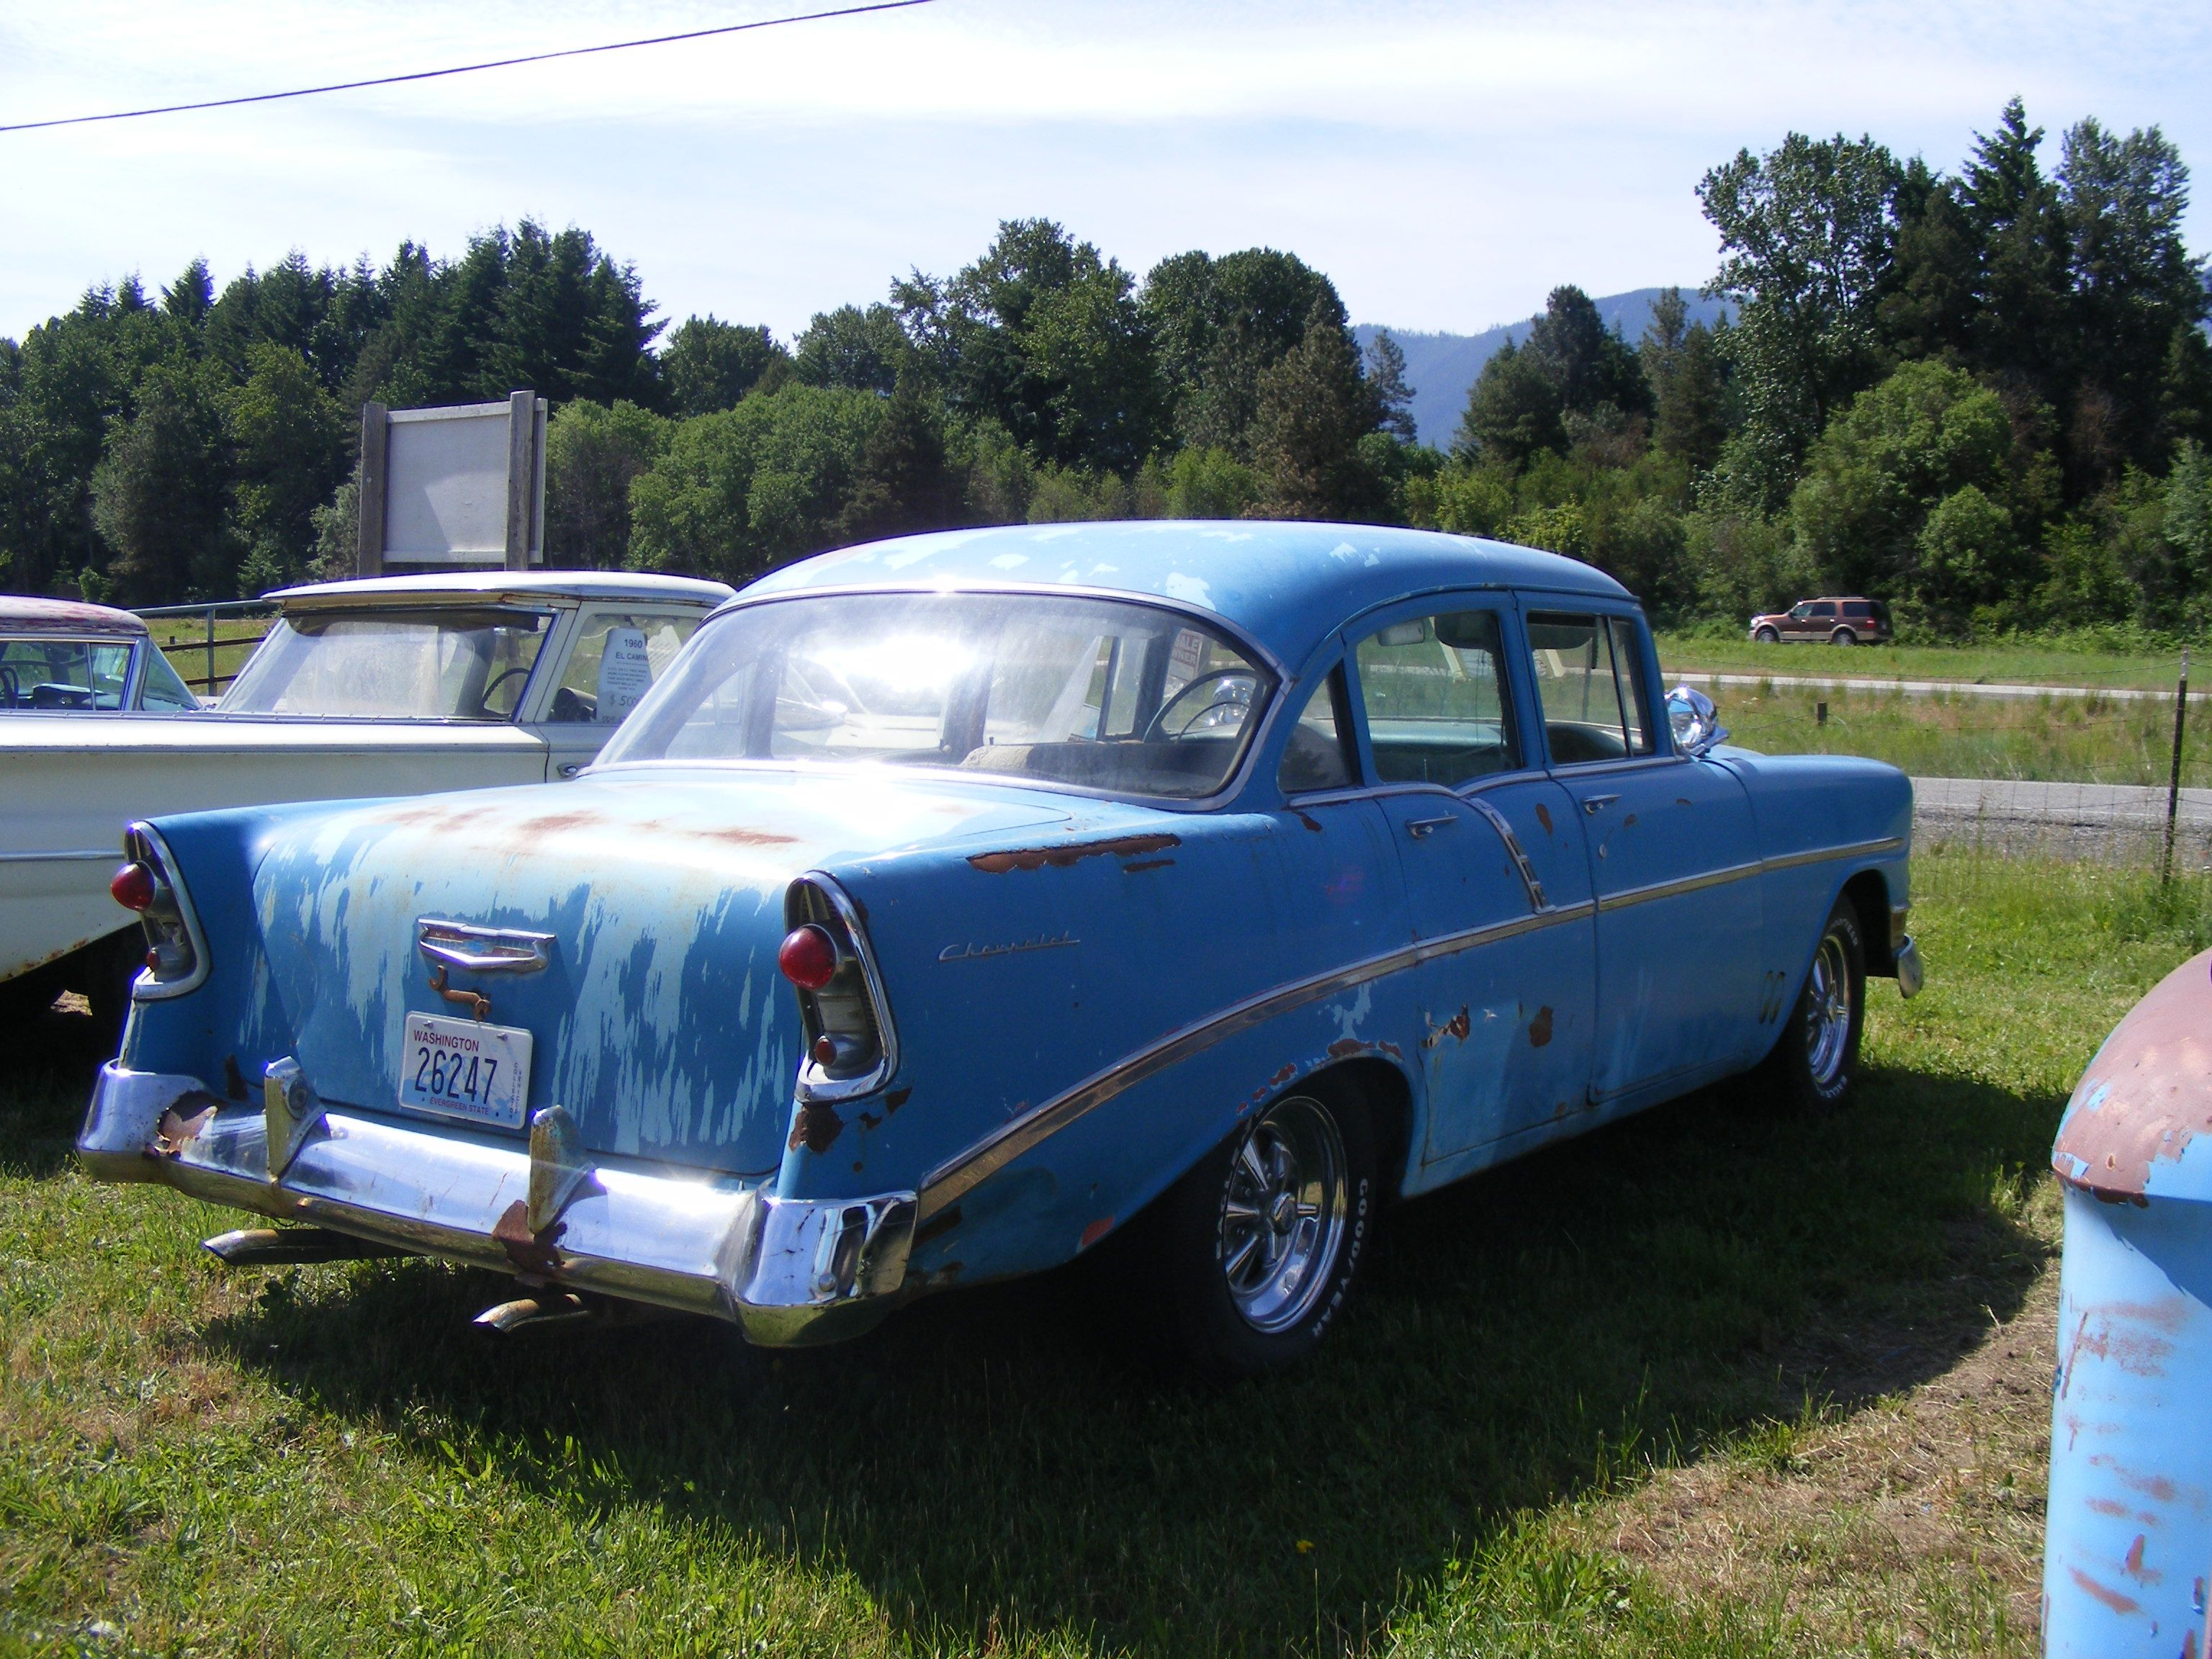 For Sale old classic car @ Easton/CleElum WA I90 47°12.2378\'N 121 ...